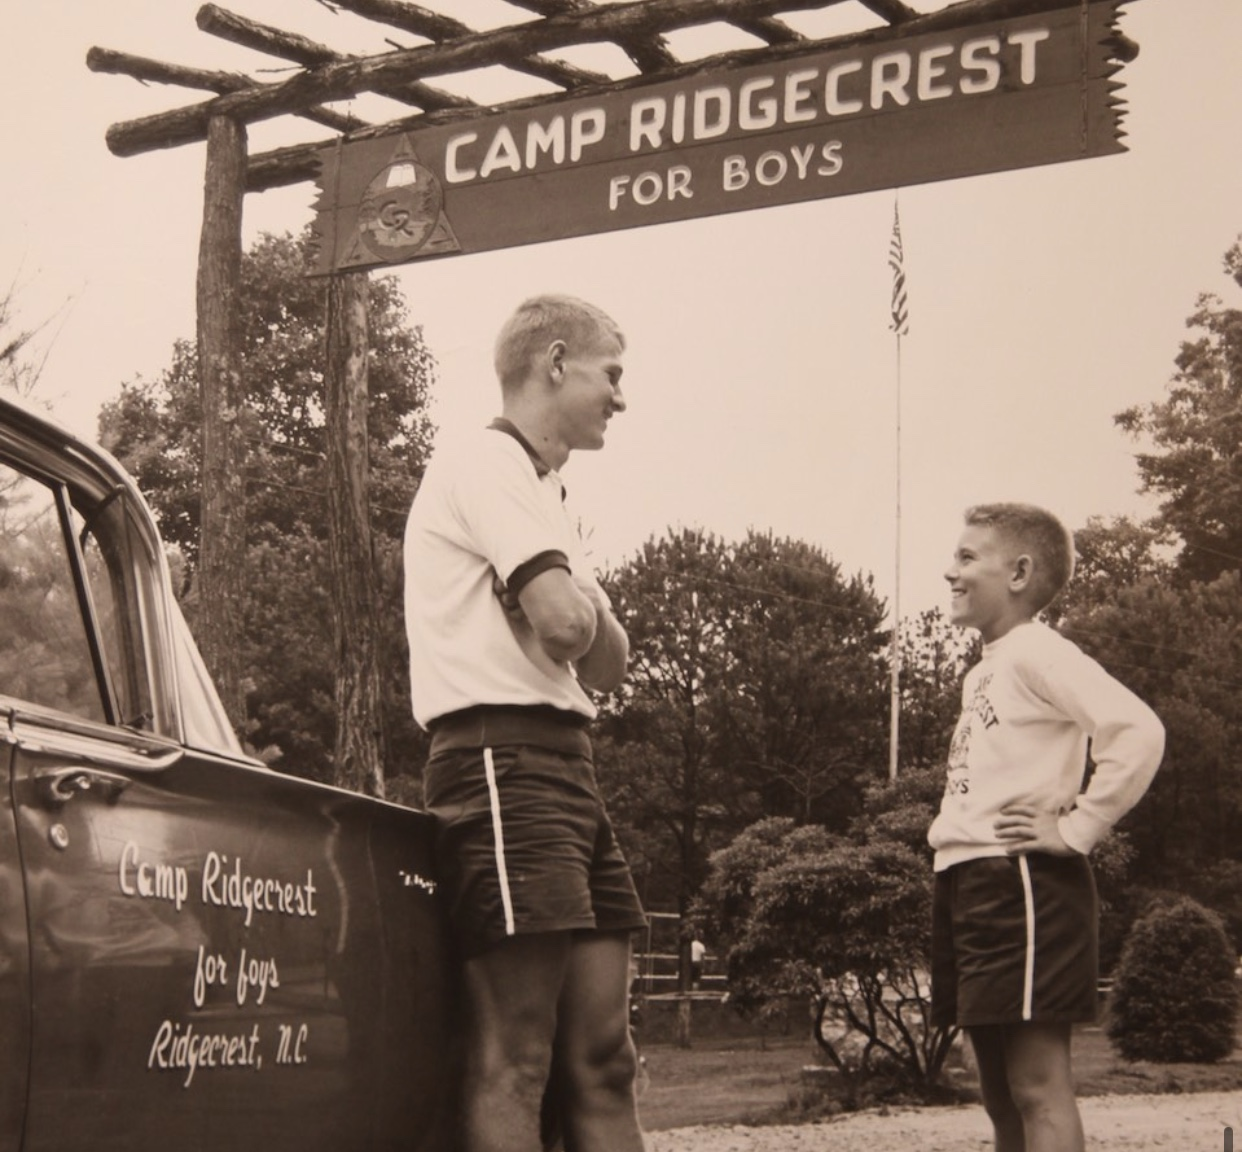 Camp Ridgecrest 1929